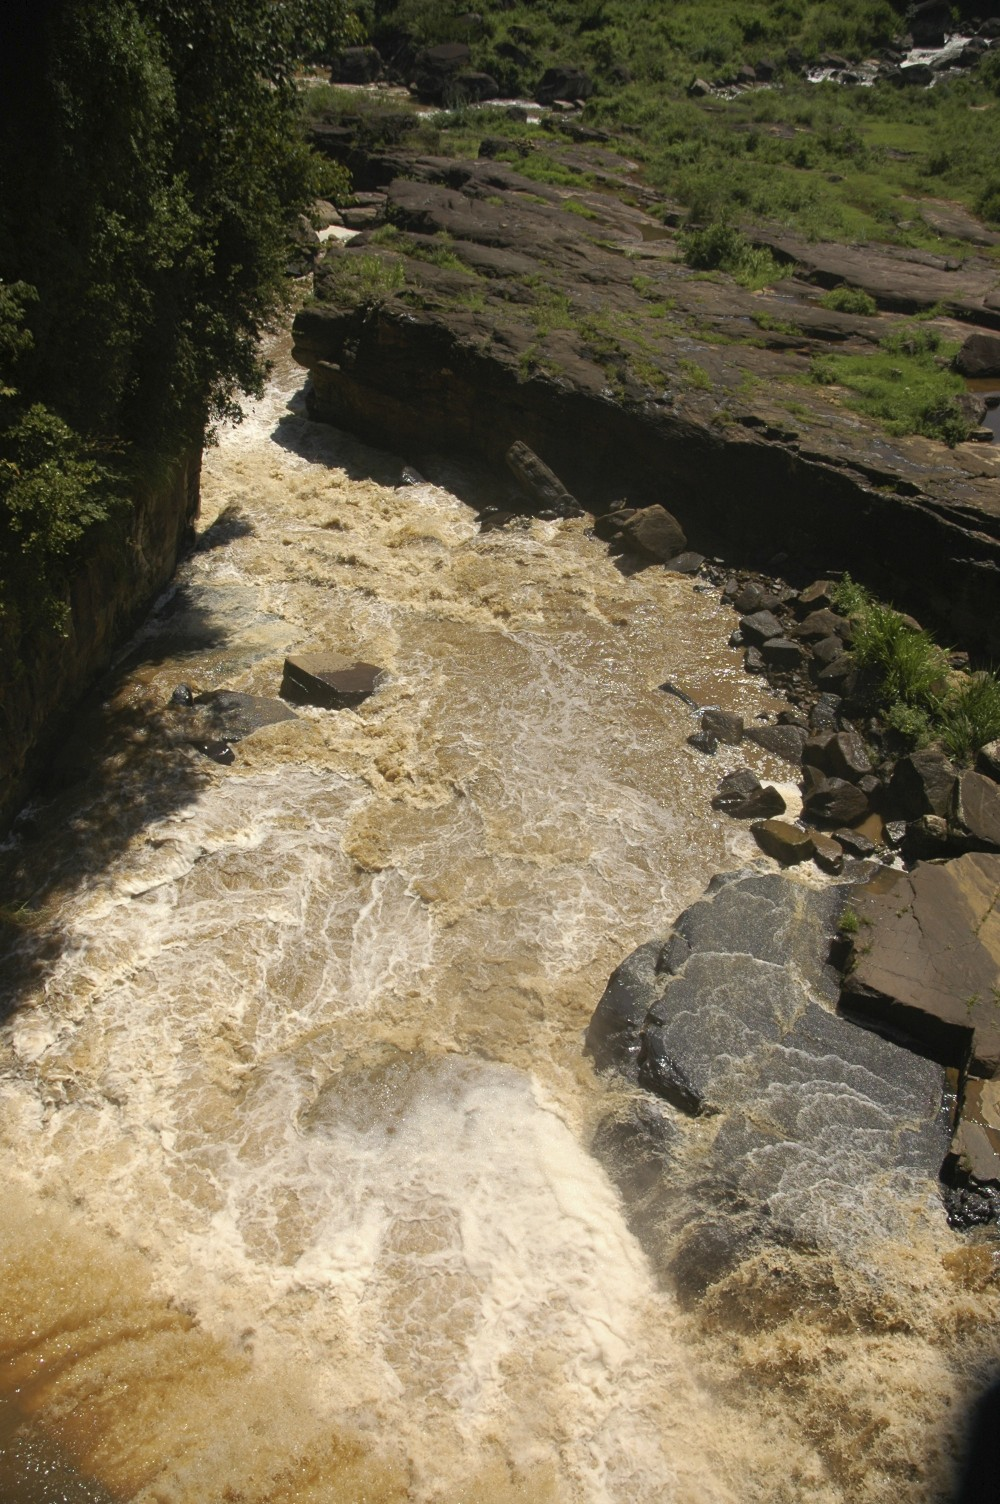 A river in the central highlands during the Monsoon, Sri Lanka loses 1 kg of top soil for every cubic meter of water during the monsoonal period.